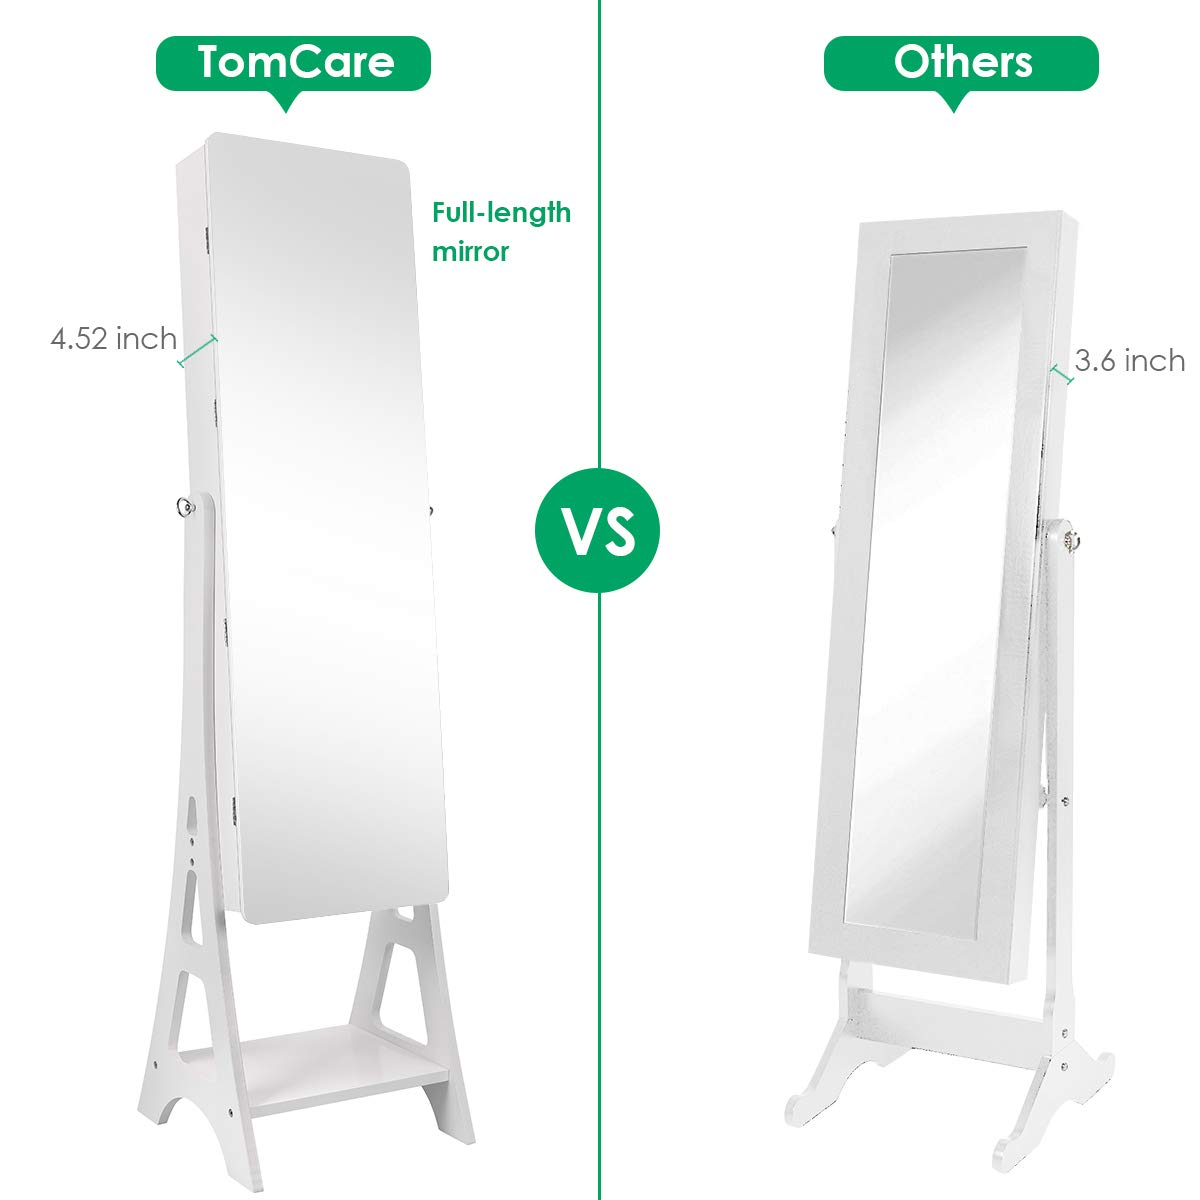 TomCare Jewelry Organizer Jewelry Cabinet Free Standing Jewelry Armoire Lockable Tilt Angle Adjustable Jewelry Box withFull Length Mirror & 2 Drawers Earring OrganizerJewelry Storage Holder, White by TomCare (Image #3)